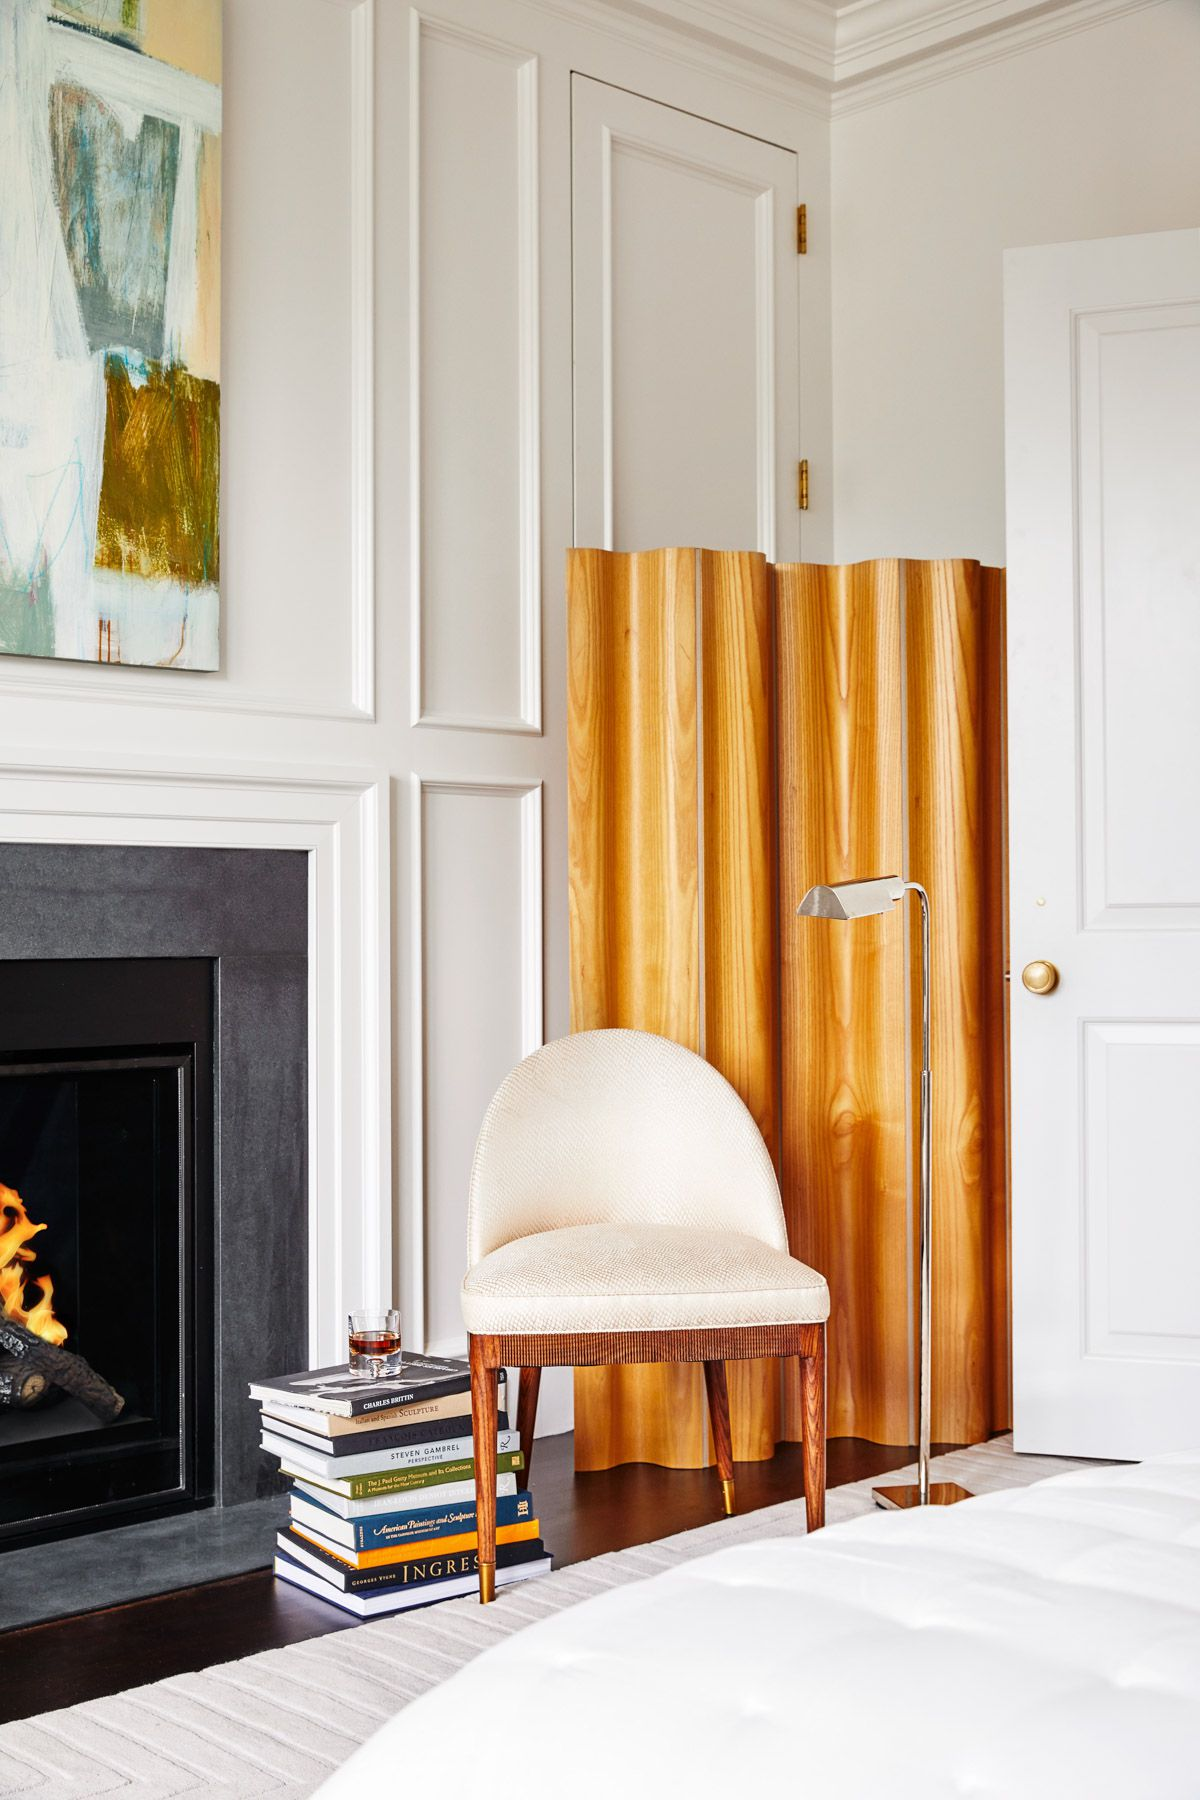 A modern white chair with wooden legs sits in front of a golden-wood room divider and fireplace. On the floor is a stack of large art and design books.